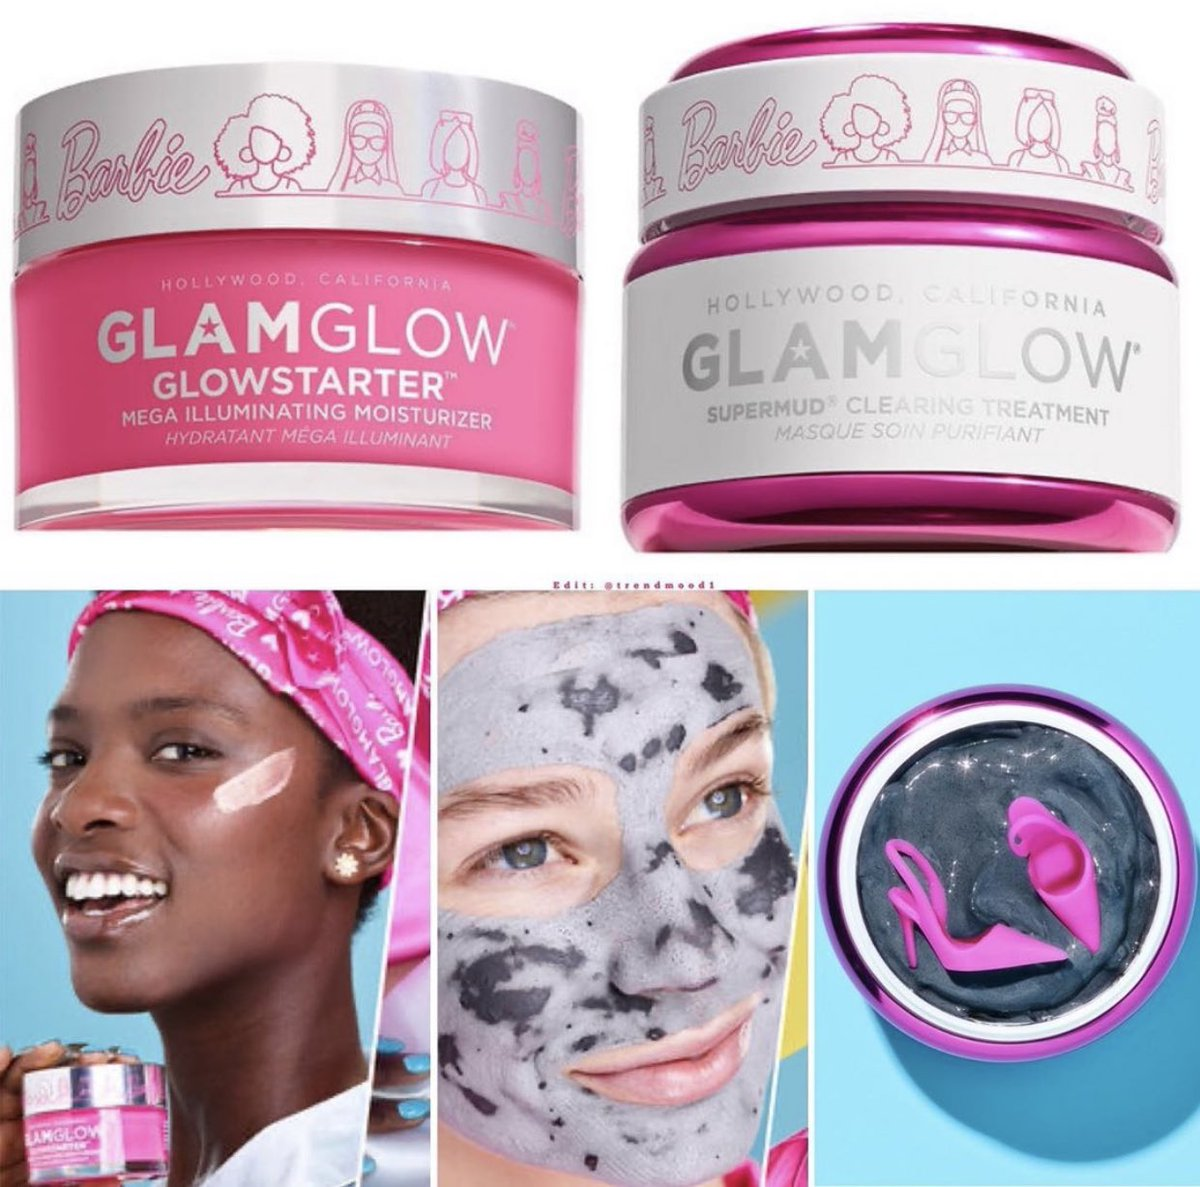 #REVEALED  NEW! Collaboration with #BARBIE #LimitedEdition packaging @glamglow X @Barbie  #BarbieXGlamglow Includes:  1. SUPERMUD Clearing Treatment Mask  2. GLOWSTARTER Mega-Illuminating Moisturizer  Online   JUNE 1STpic.twitter.com/Xc26elsFAs